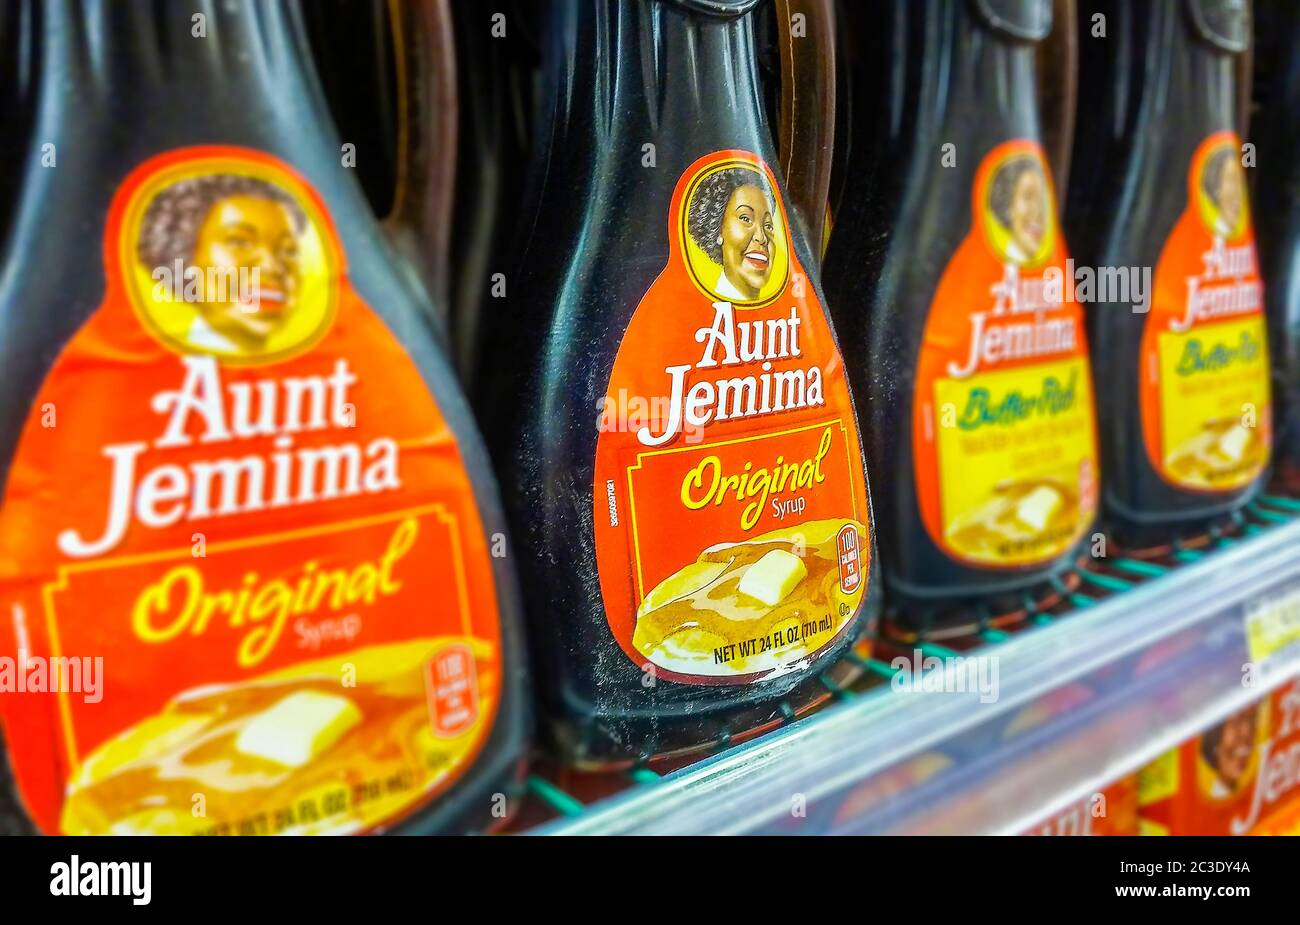 Bottles of PepsiCo's Quaker Oats' Aunt Jemina brand maple flavored syrup in a supermarket in New York on Wednesday, June 17, 2020. Quaker Oats announced that it will retire the 131 year old brand citing its name and imagery redolent of slavery-era South.(© Richard B. Levine) Stock Photo